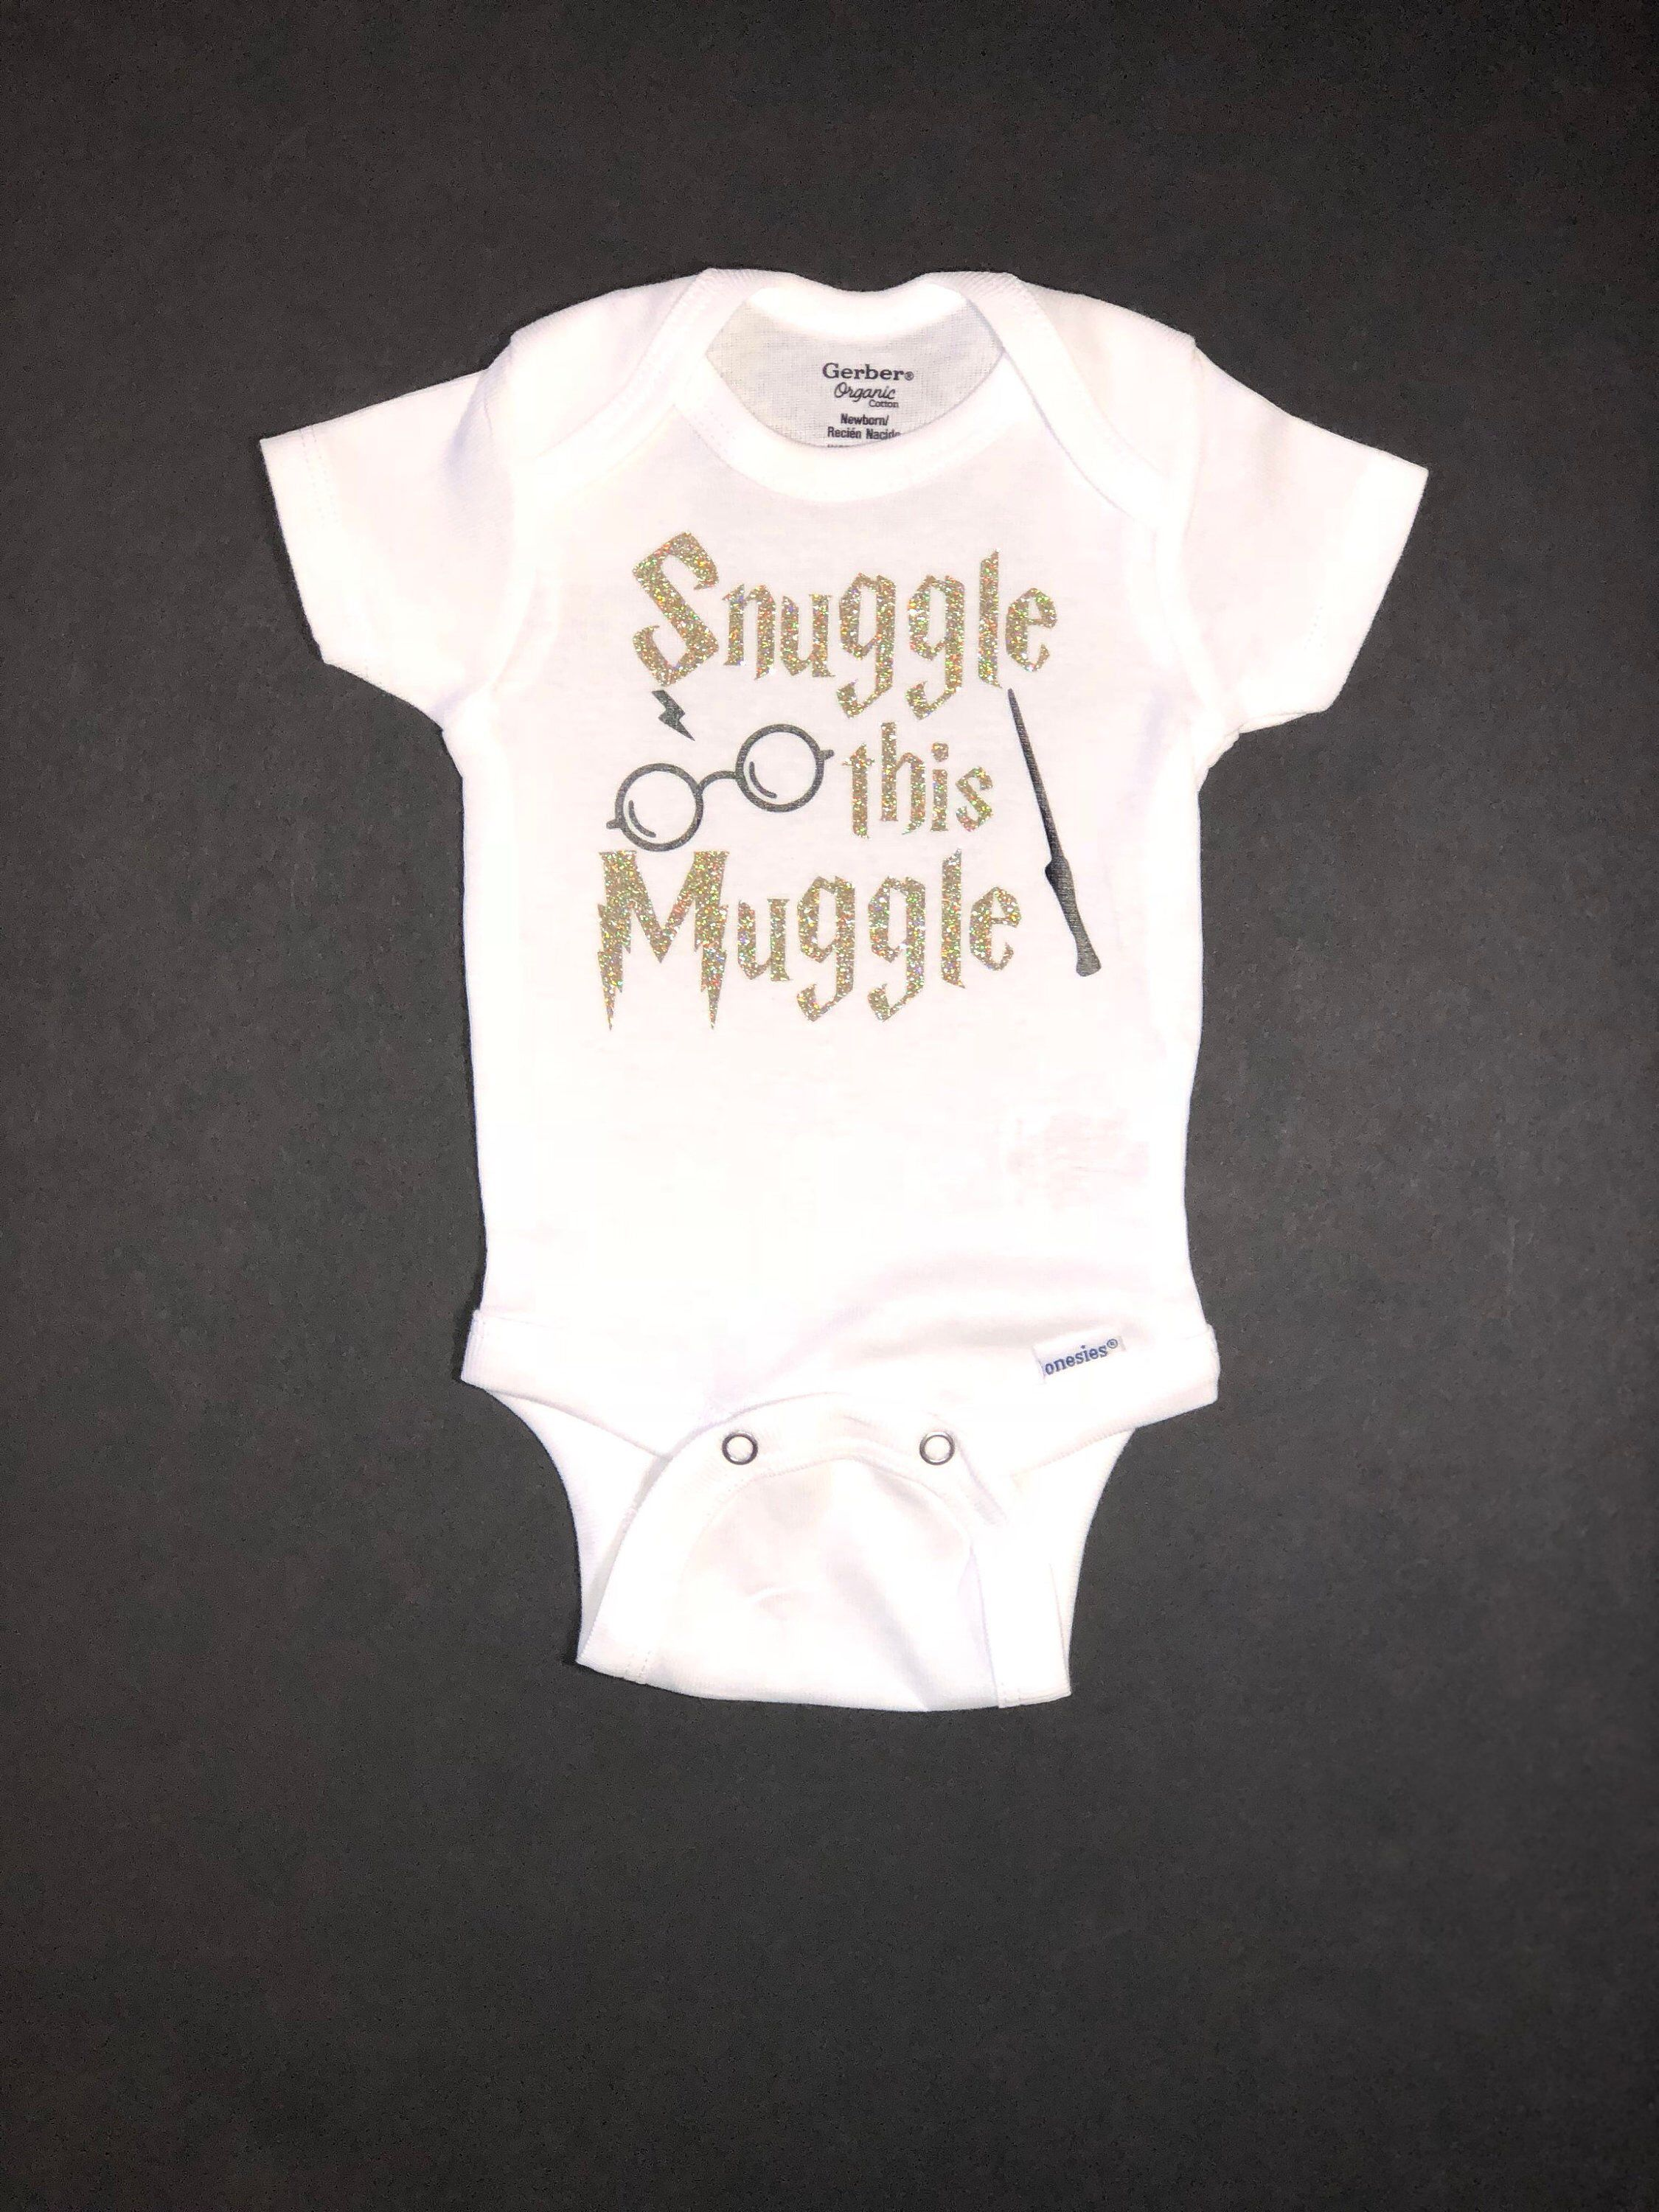 78b1832d1 Excited to share this item from my #etsy shop: Snuggle This Muggle / Onesie